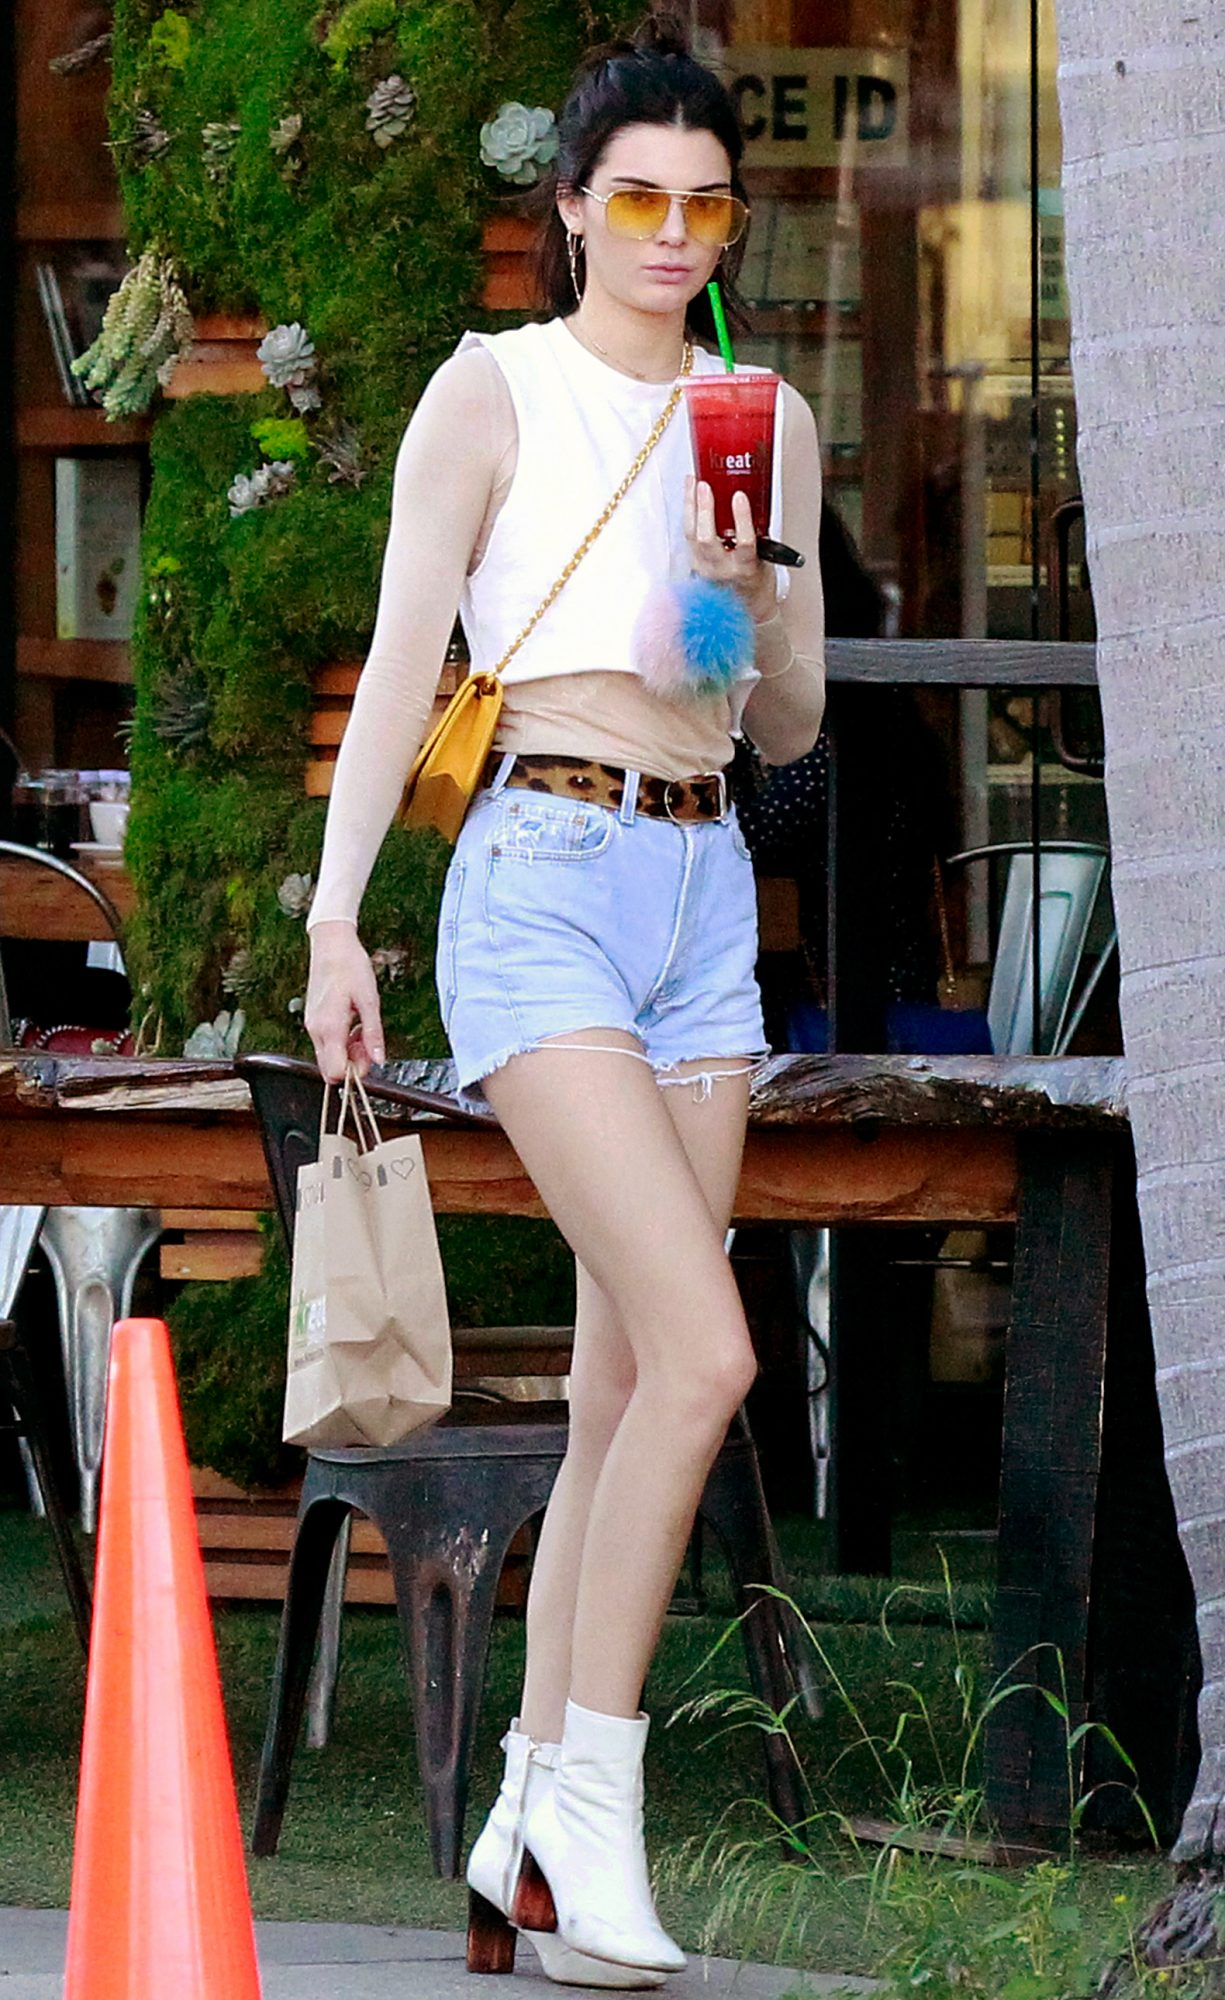 EXCLUSIVE: Kendall Jenner spotted grabbing a juice in LA